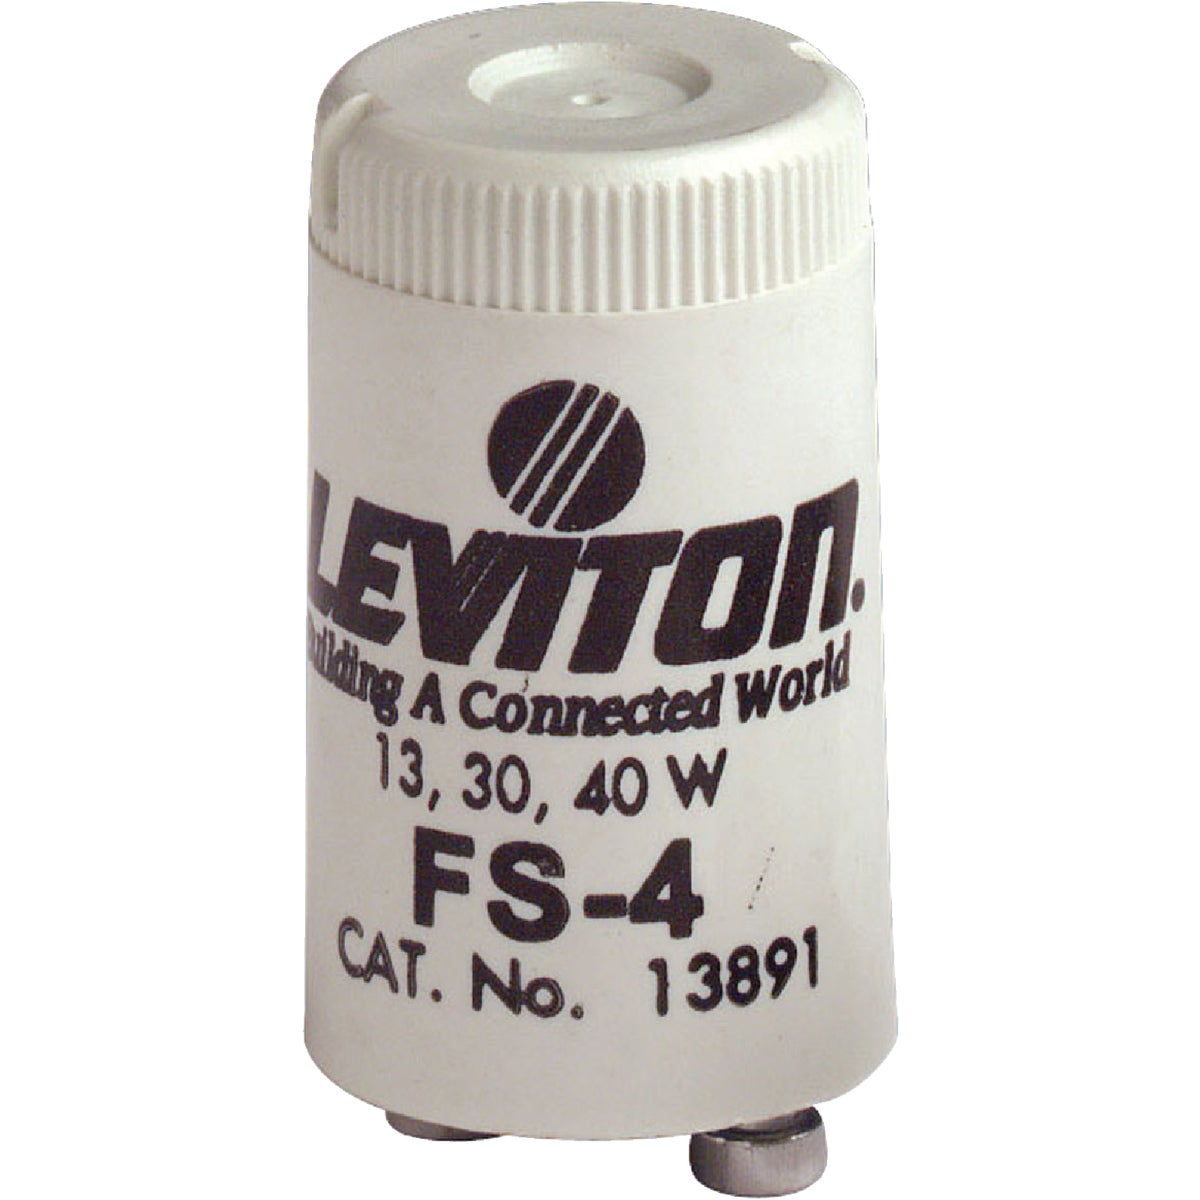 FLUOR STARTER - 00013891000 by Leviton Mfg Co